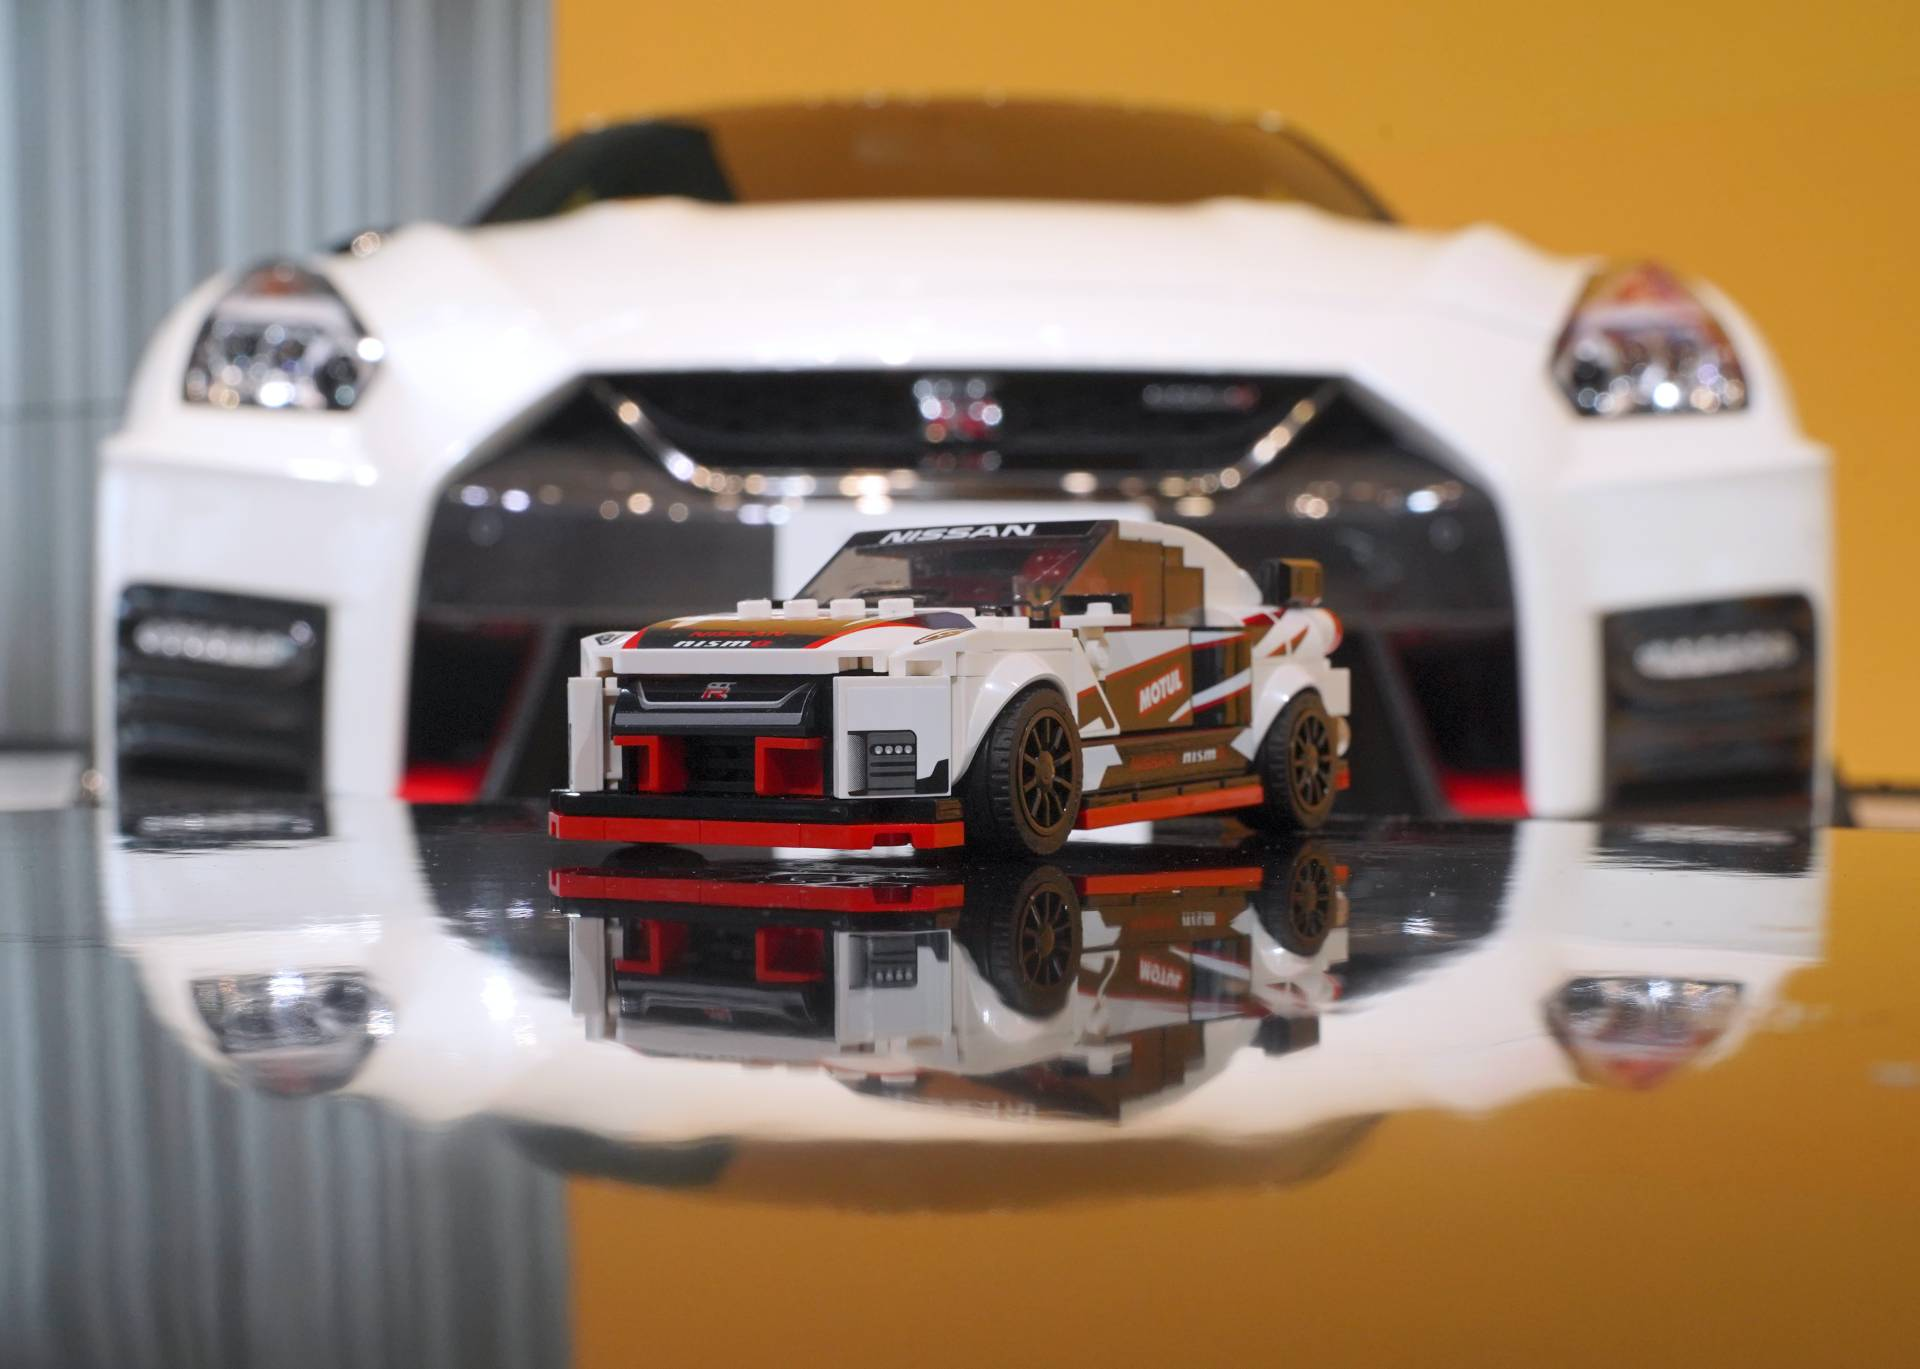 2020 Nissan Gt R Nismo And Lego Speed Champions Nissan Gt R Nismo 1